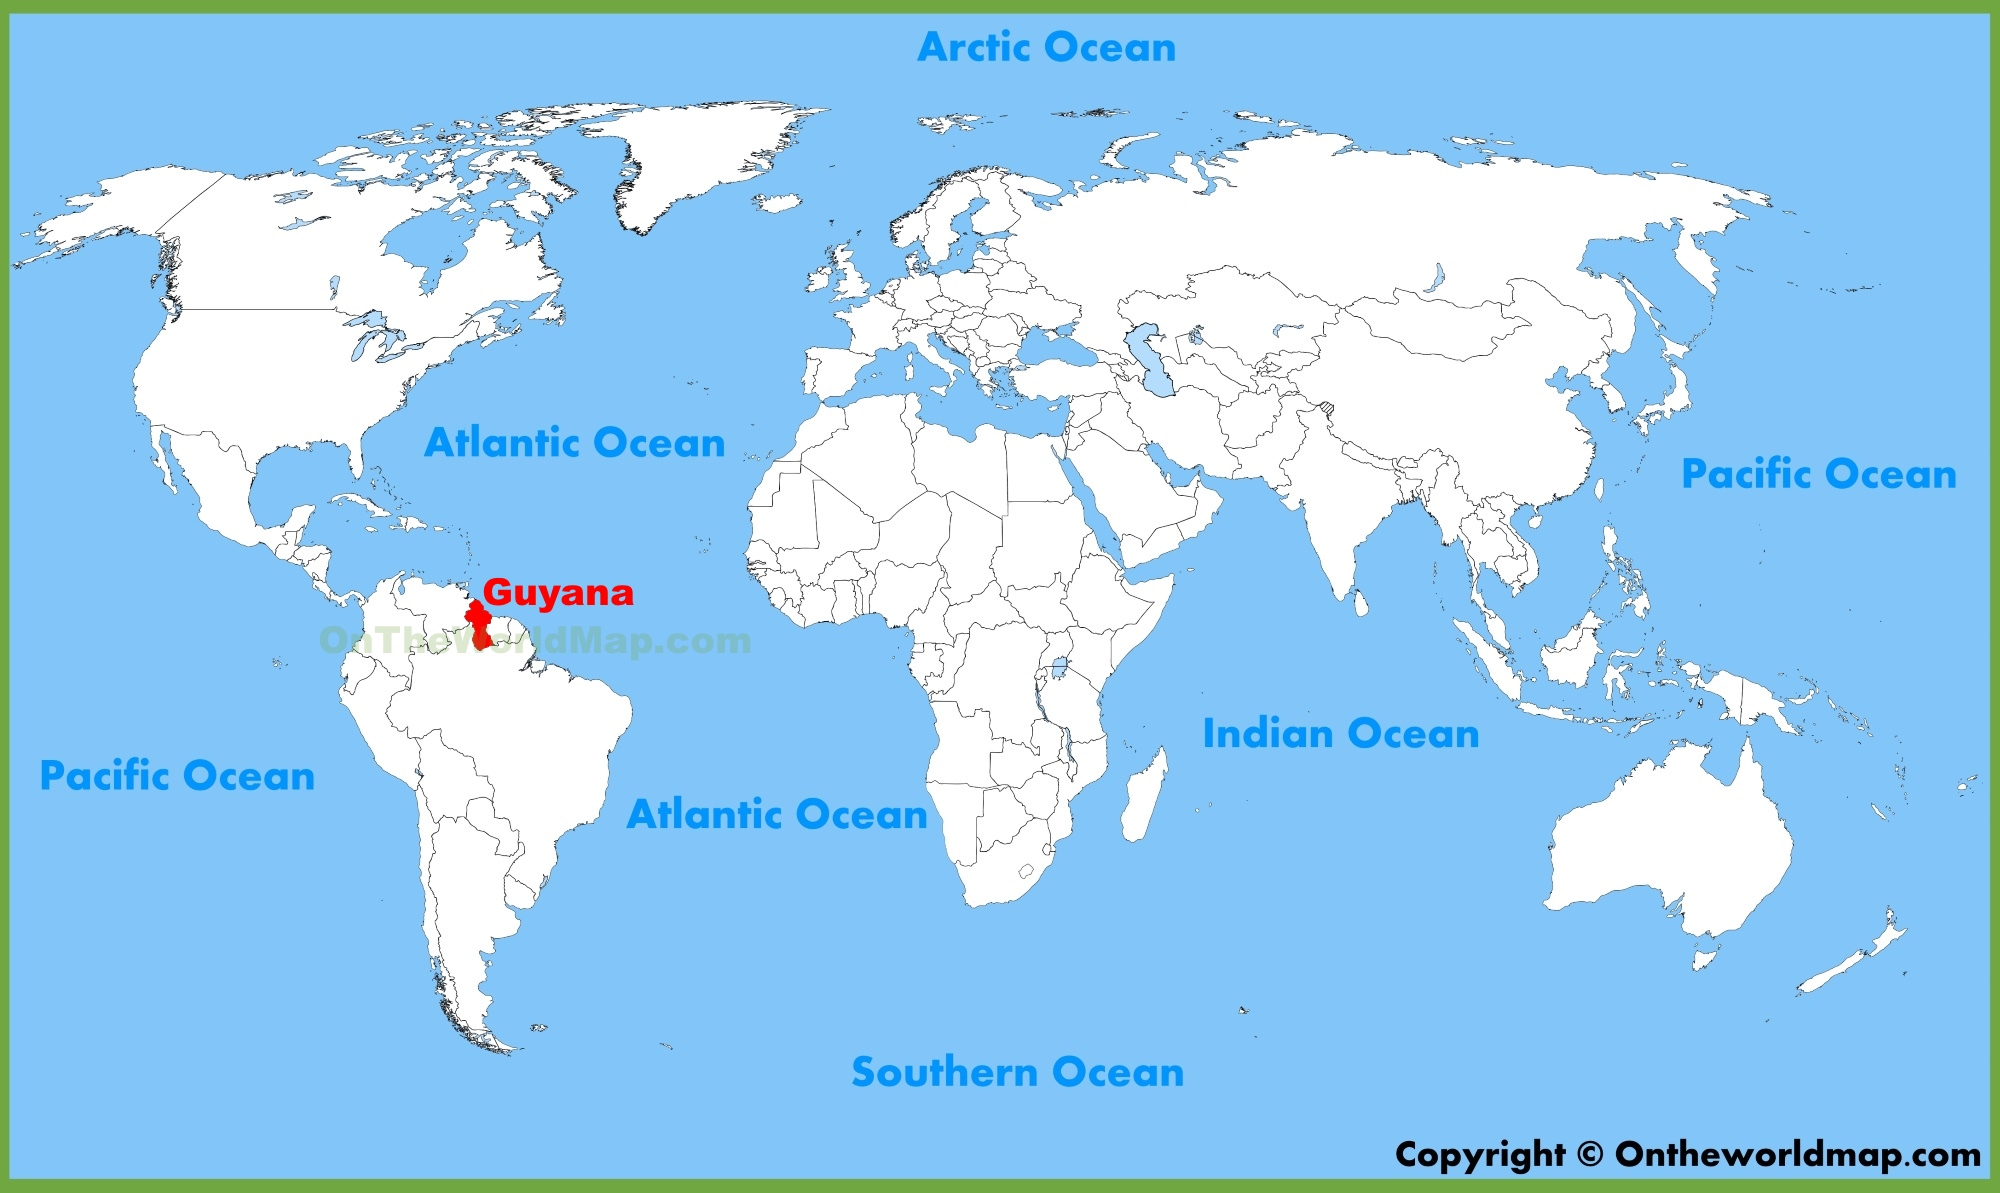 Where Is Guyana Located On The World Map.Guyana Location On The World Map